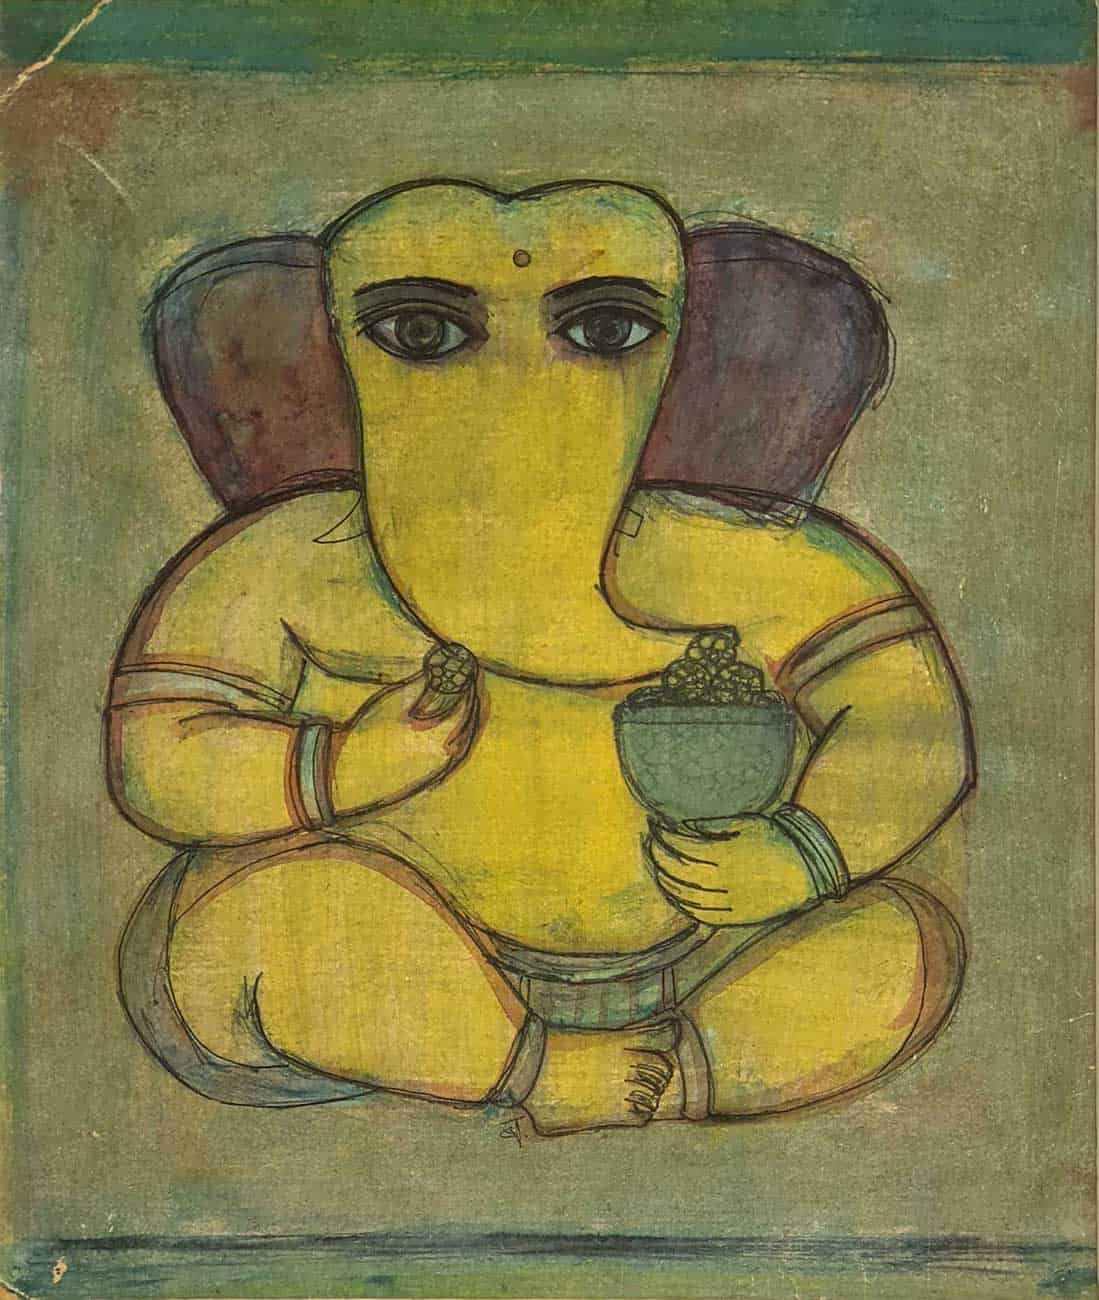 ganesha-eating-laddu-watercolour-on-paper-8.5×10.25-inches-1957-min